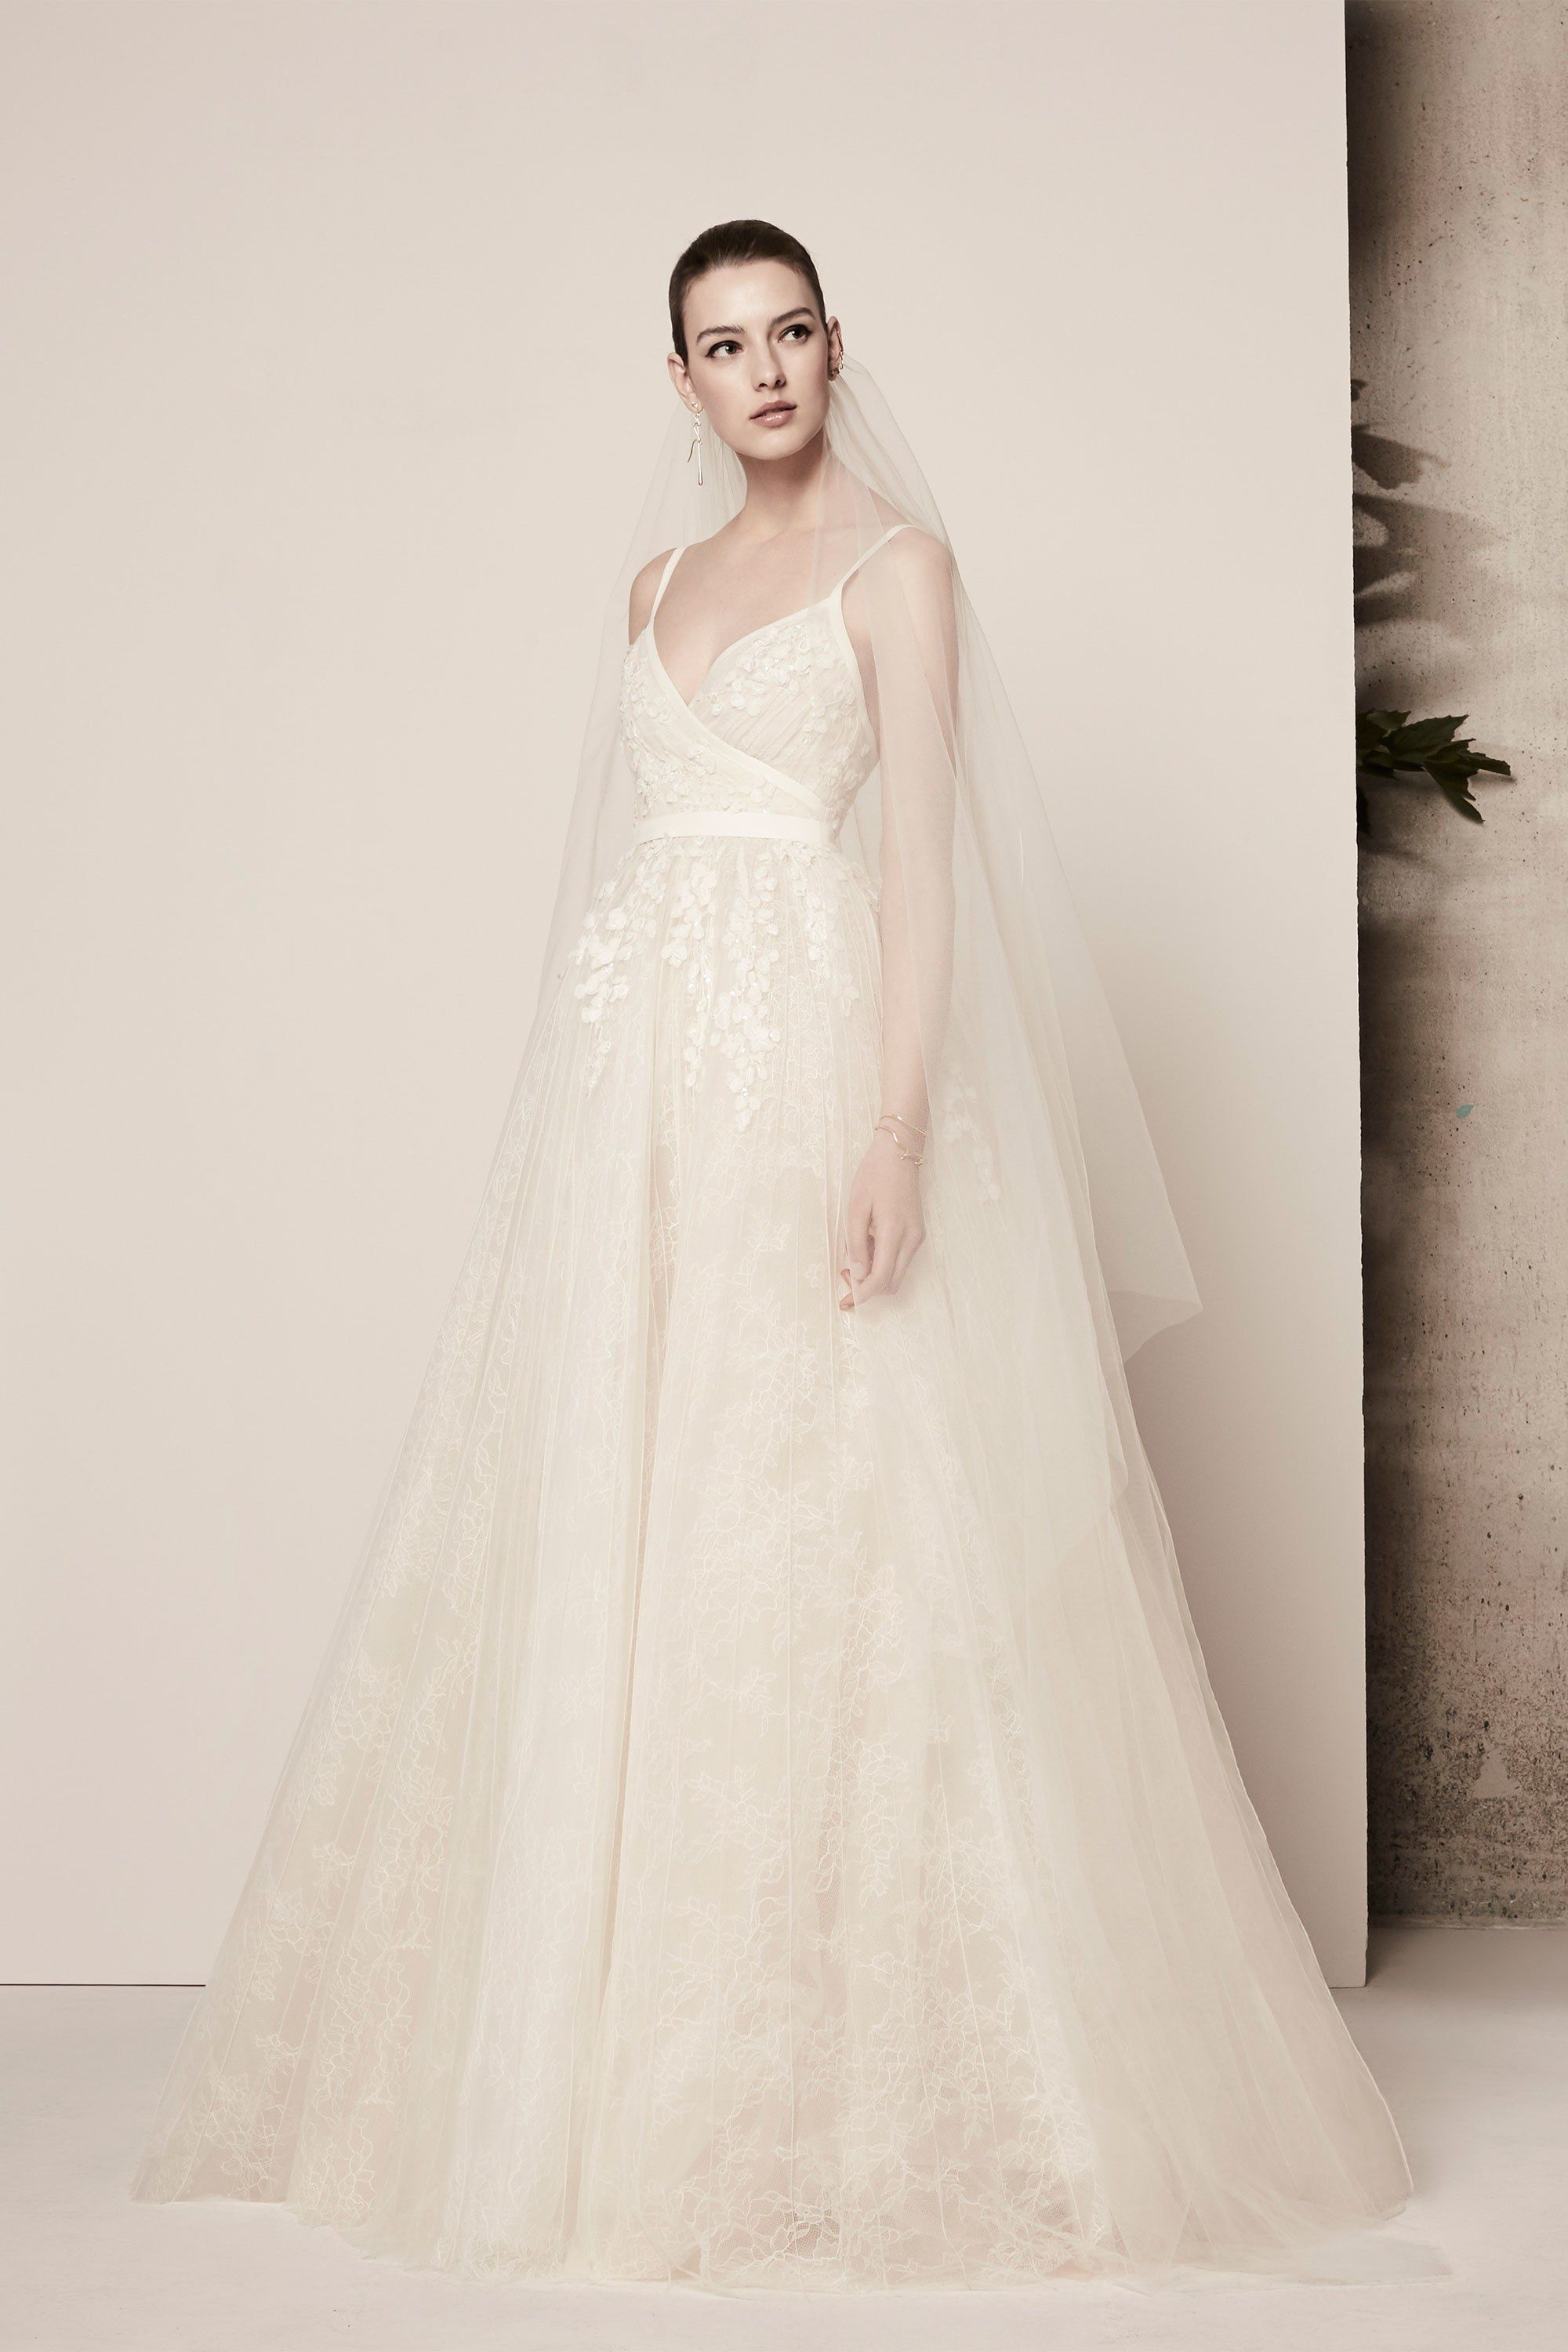 ecb8c40c5a0 Elie Saab Bridal Spring 2018 Collection Photos - Vogue